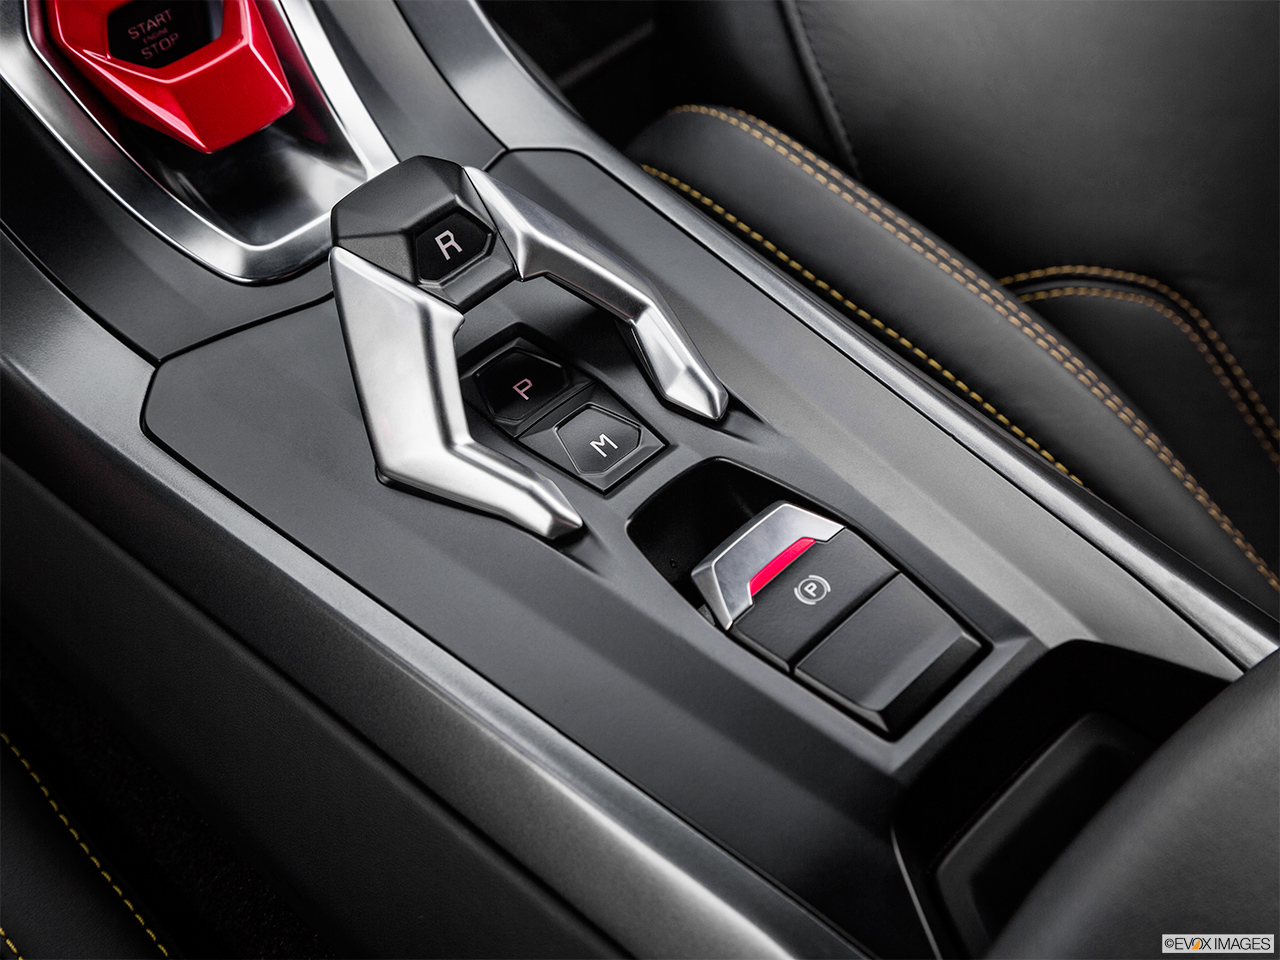 2015 Lamborghini Huracan LP 610-4 Gear shifter/center console.